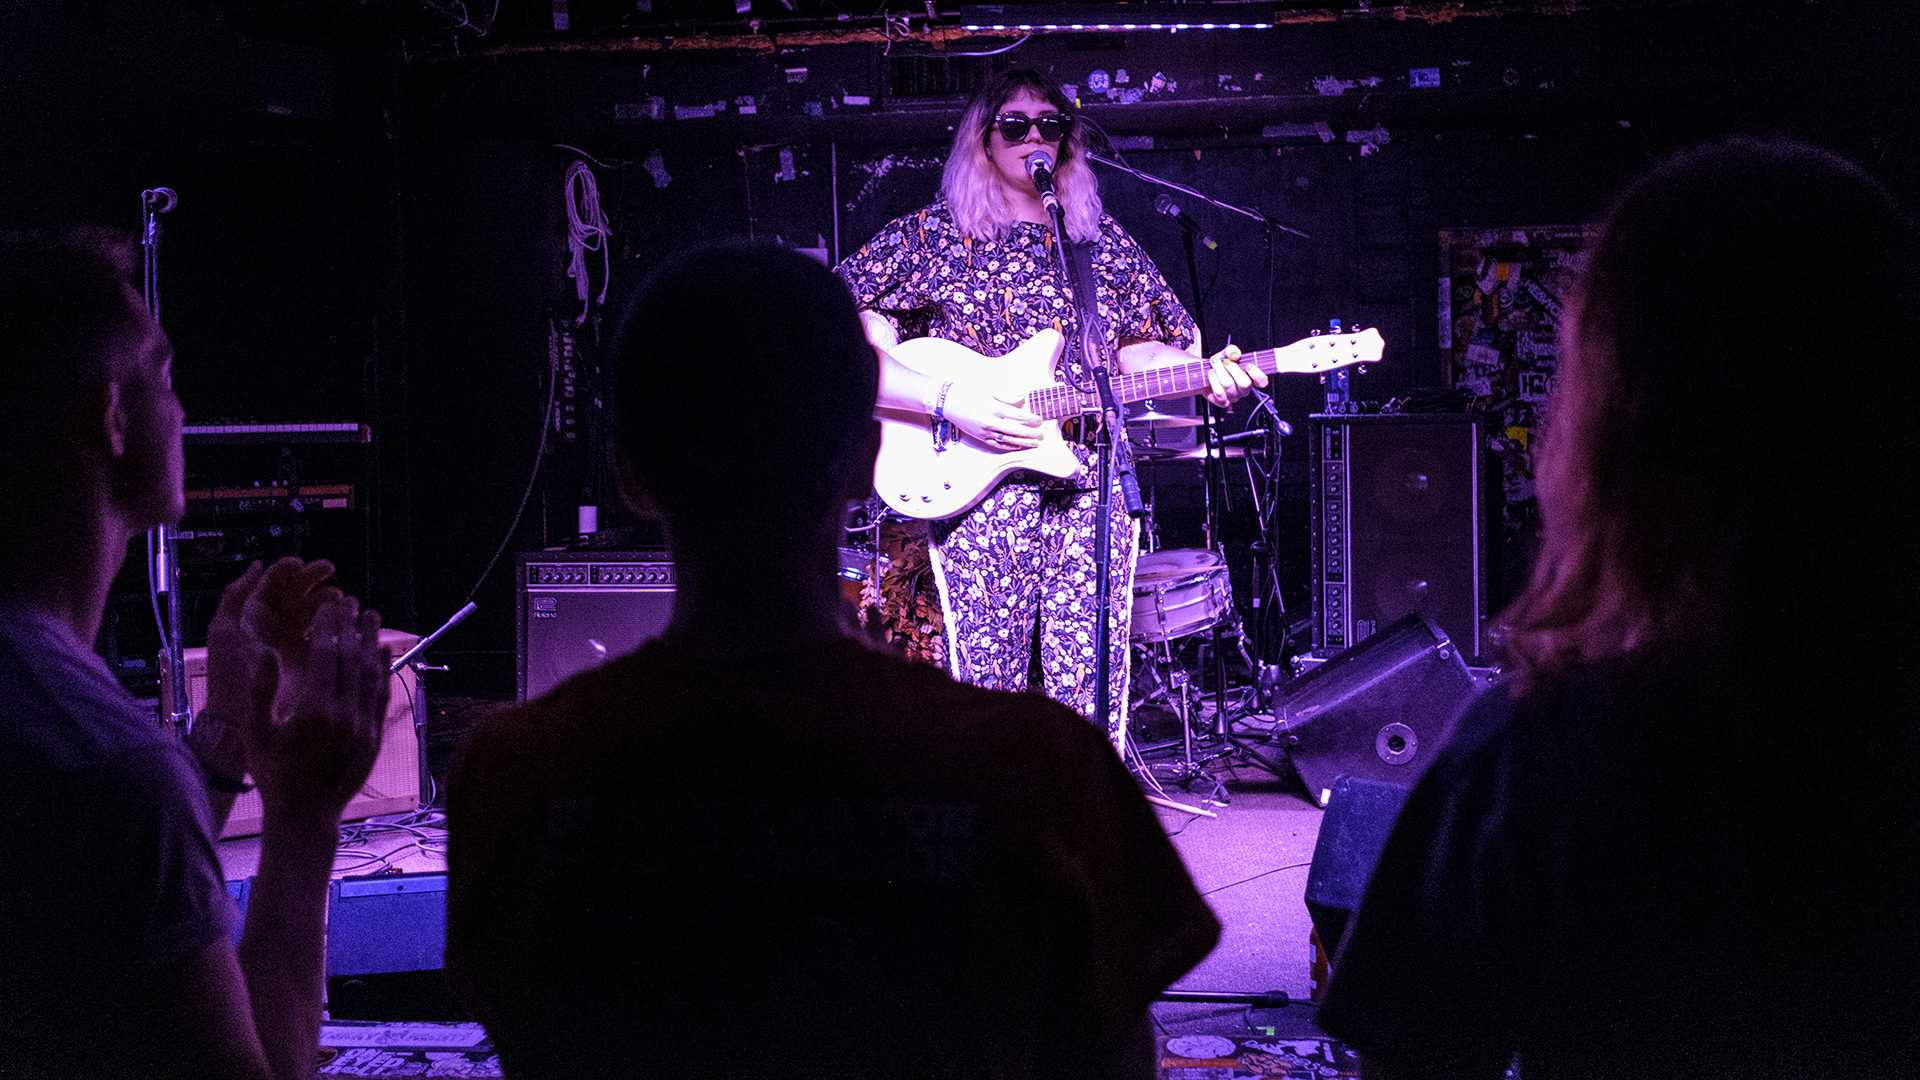 Karen Meat performs at Gabe's during the Witching Hour Festival on Oct. 20, 2017. The band will join Quichenight on stage on June 17 at Gabe's. (Nick Rohlman/The Daily Iowan)